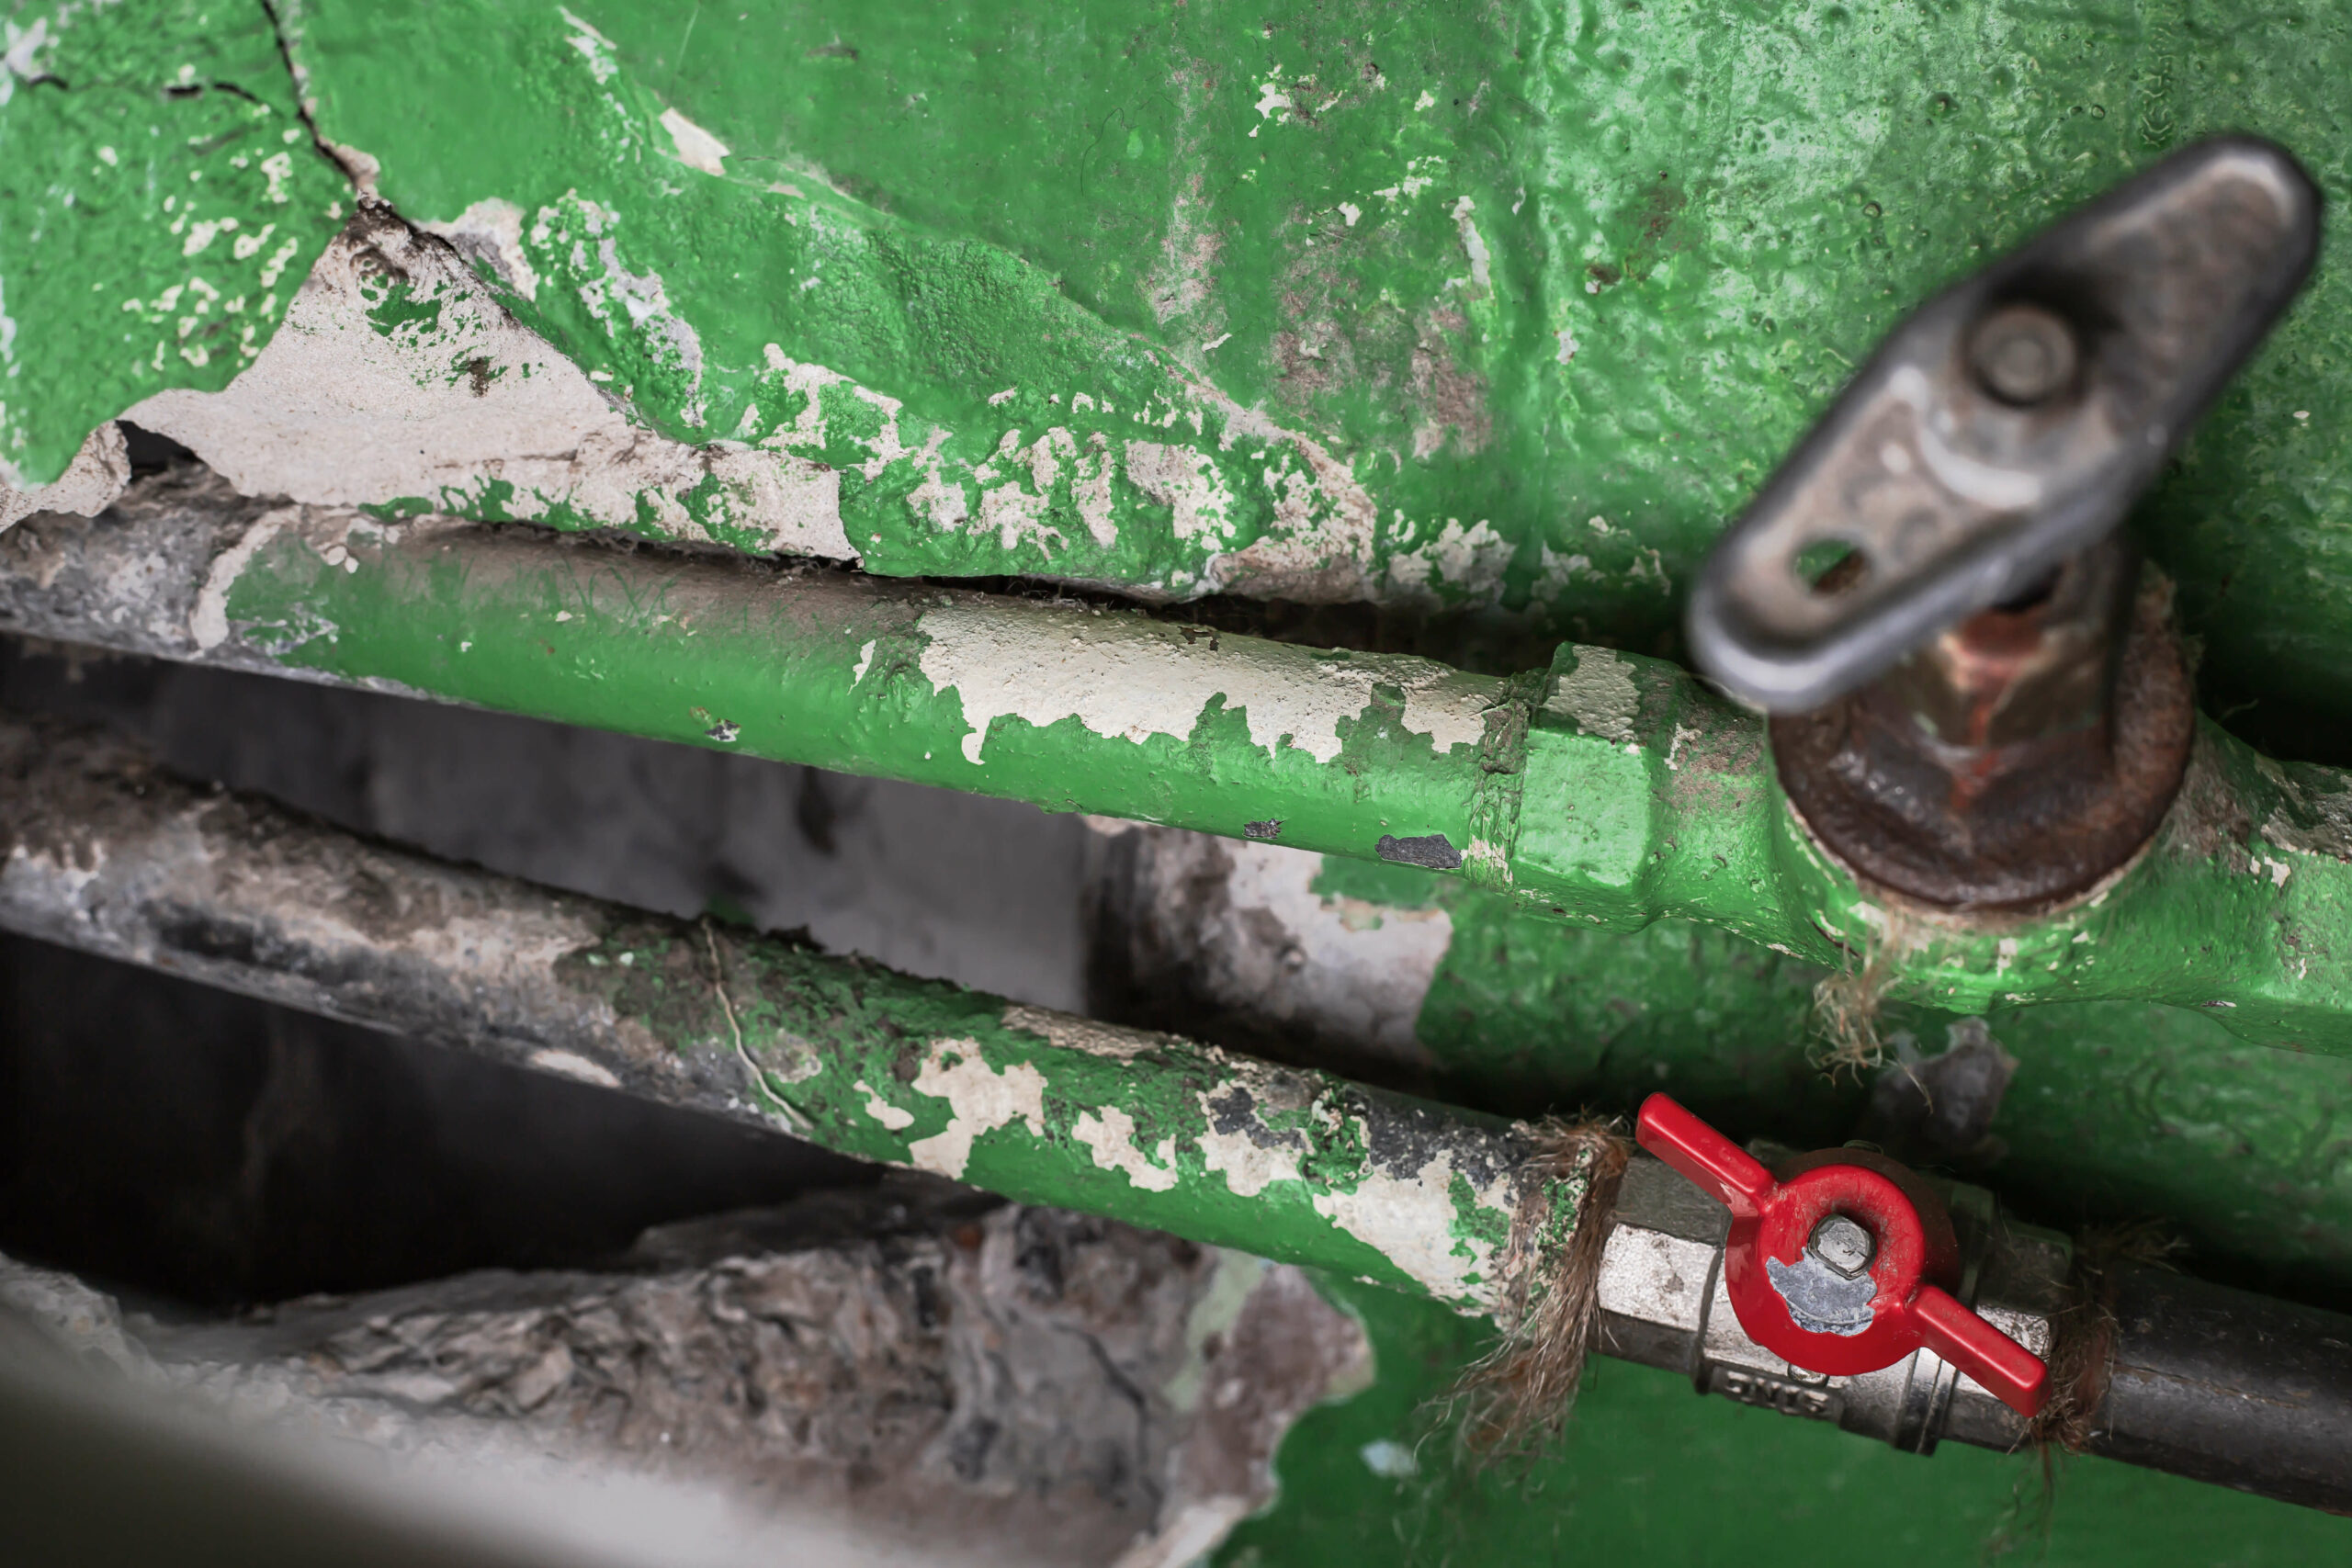 Old plumbing, showing pipes and valves covered in flaking, green paint